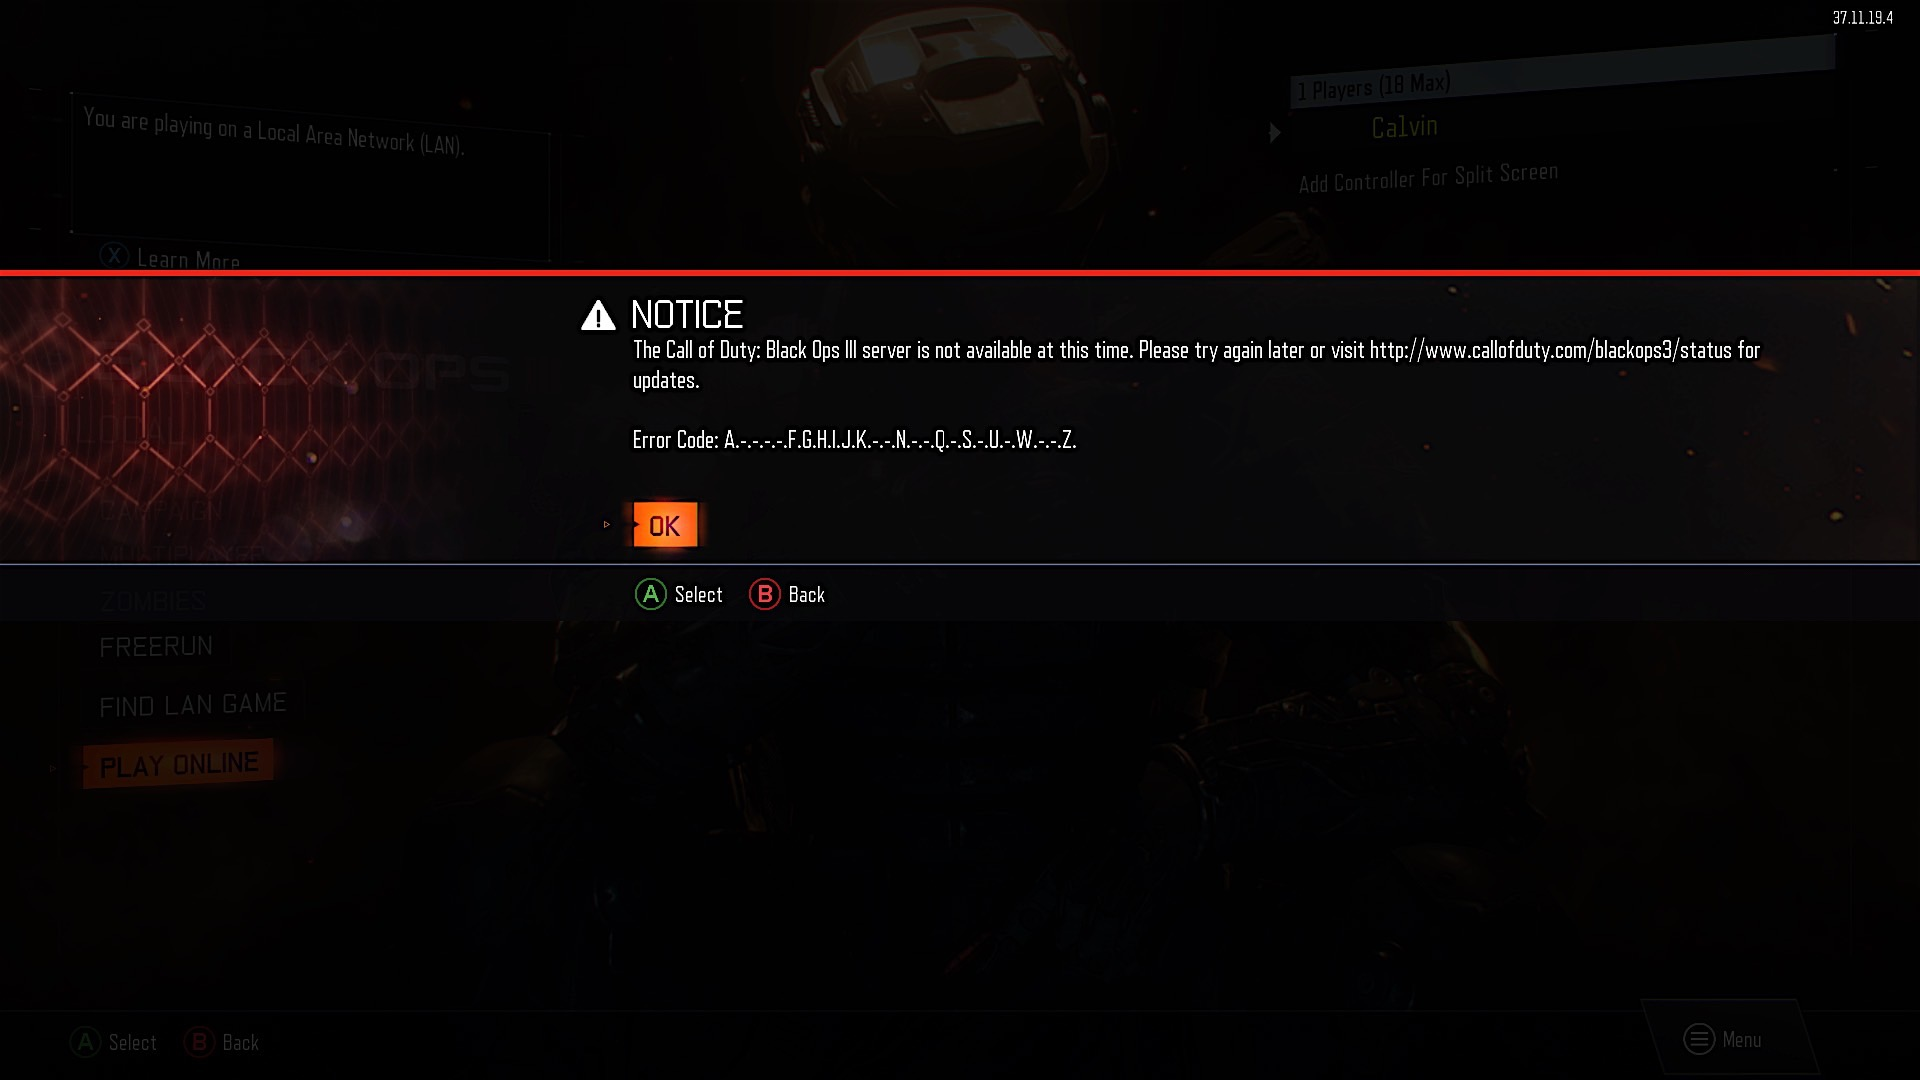 Mw2 taking ages to connect to matchmaking server